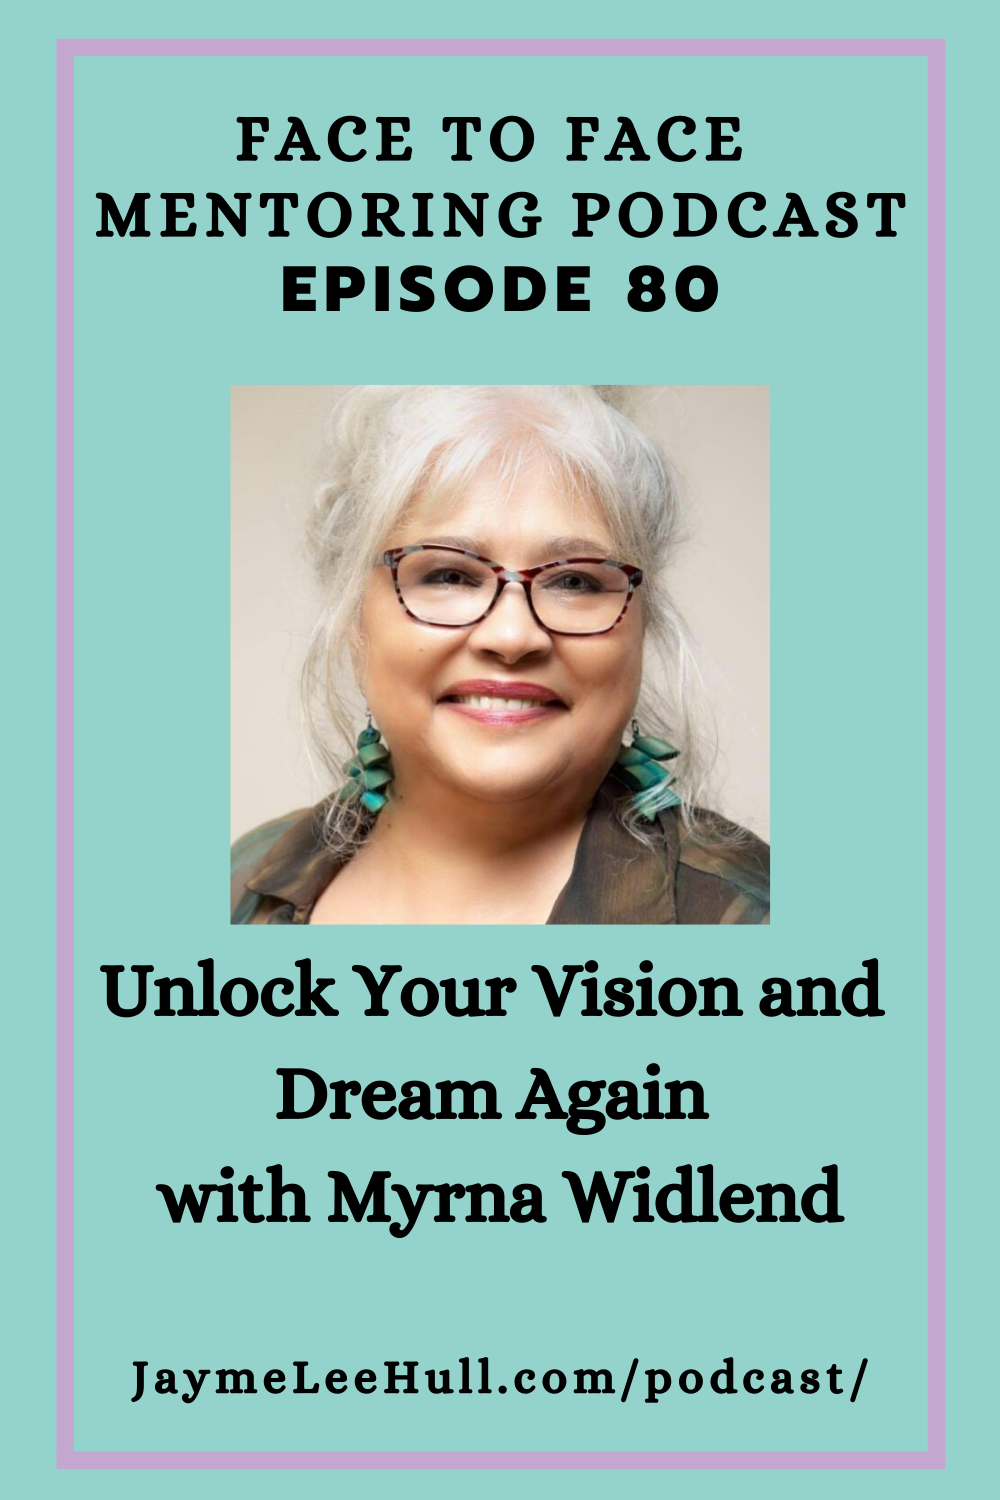 Do you need clarity? Have you forgotten how to dream? Using a vision board can be a solution tool to gain clarity. In Episode 80 my guest Myrna Widlend, shares her story and how to Unlock Your Vision to get unstuck and move forward in your life.